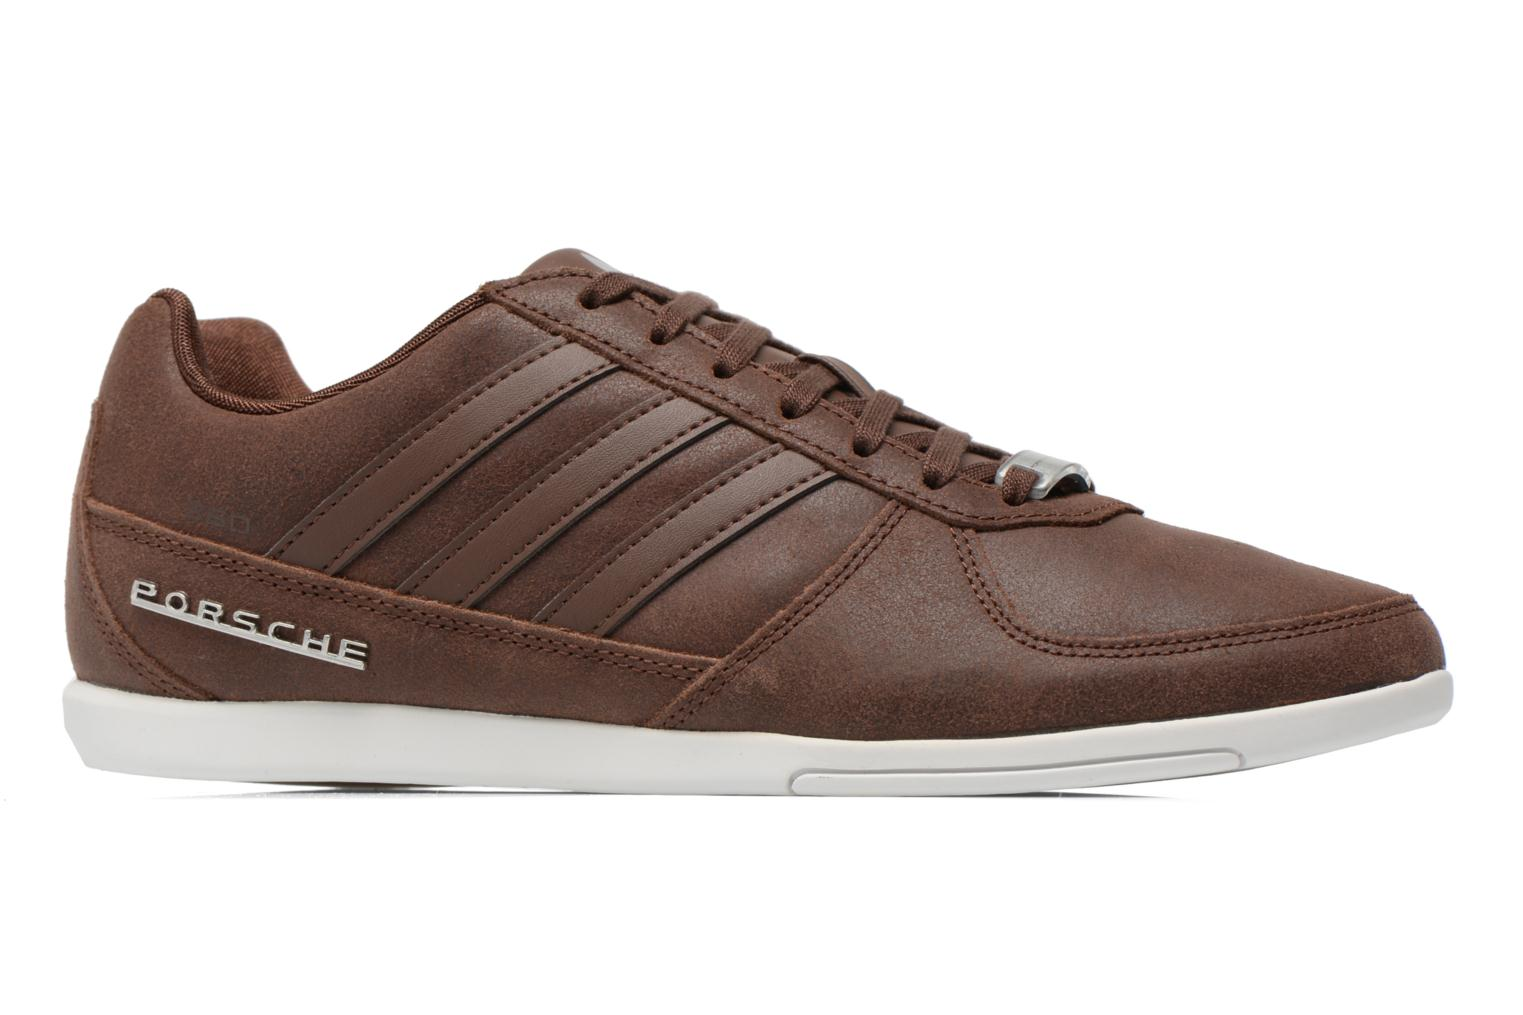 Baskets Adidas Originals Porsche 360 1.2 Suede Marron vue derrière